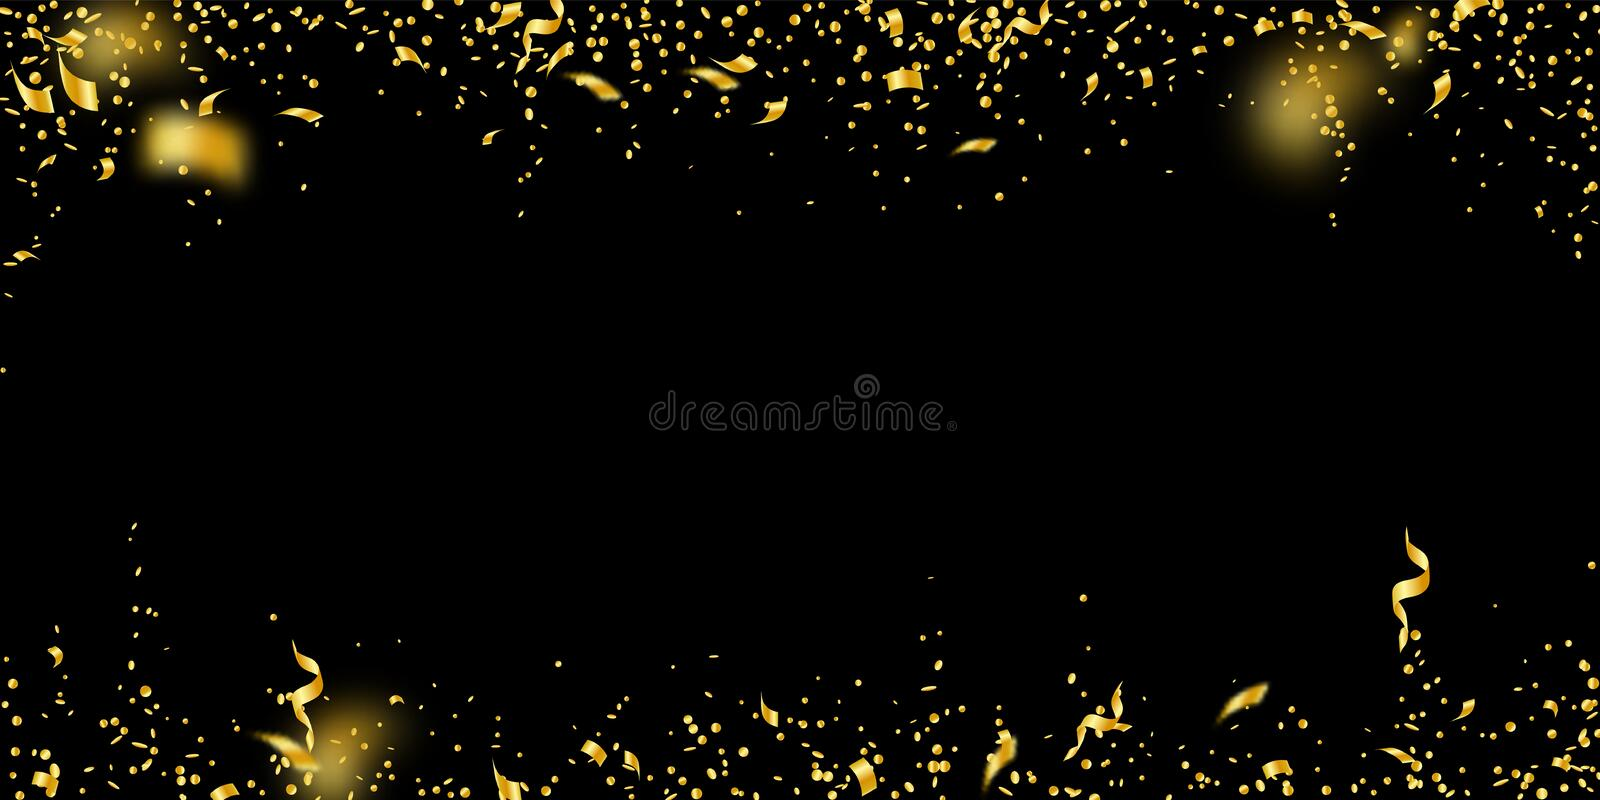 Streamers and confetti. Gold tinsel and foil ribbo. Ns. Confetti falling rain on black background. Bewitching paty overlay template. Positive celebration concept stock illustration